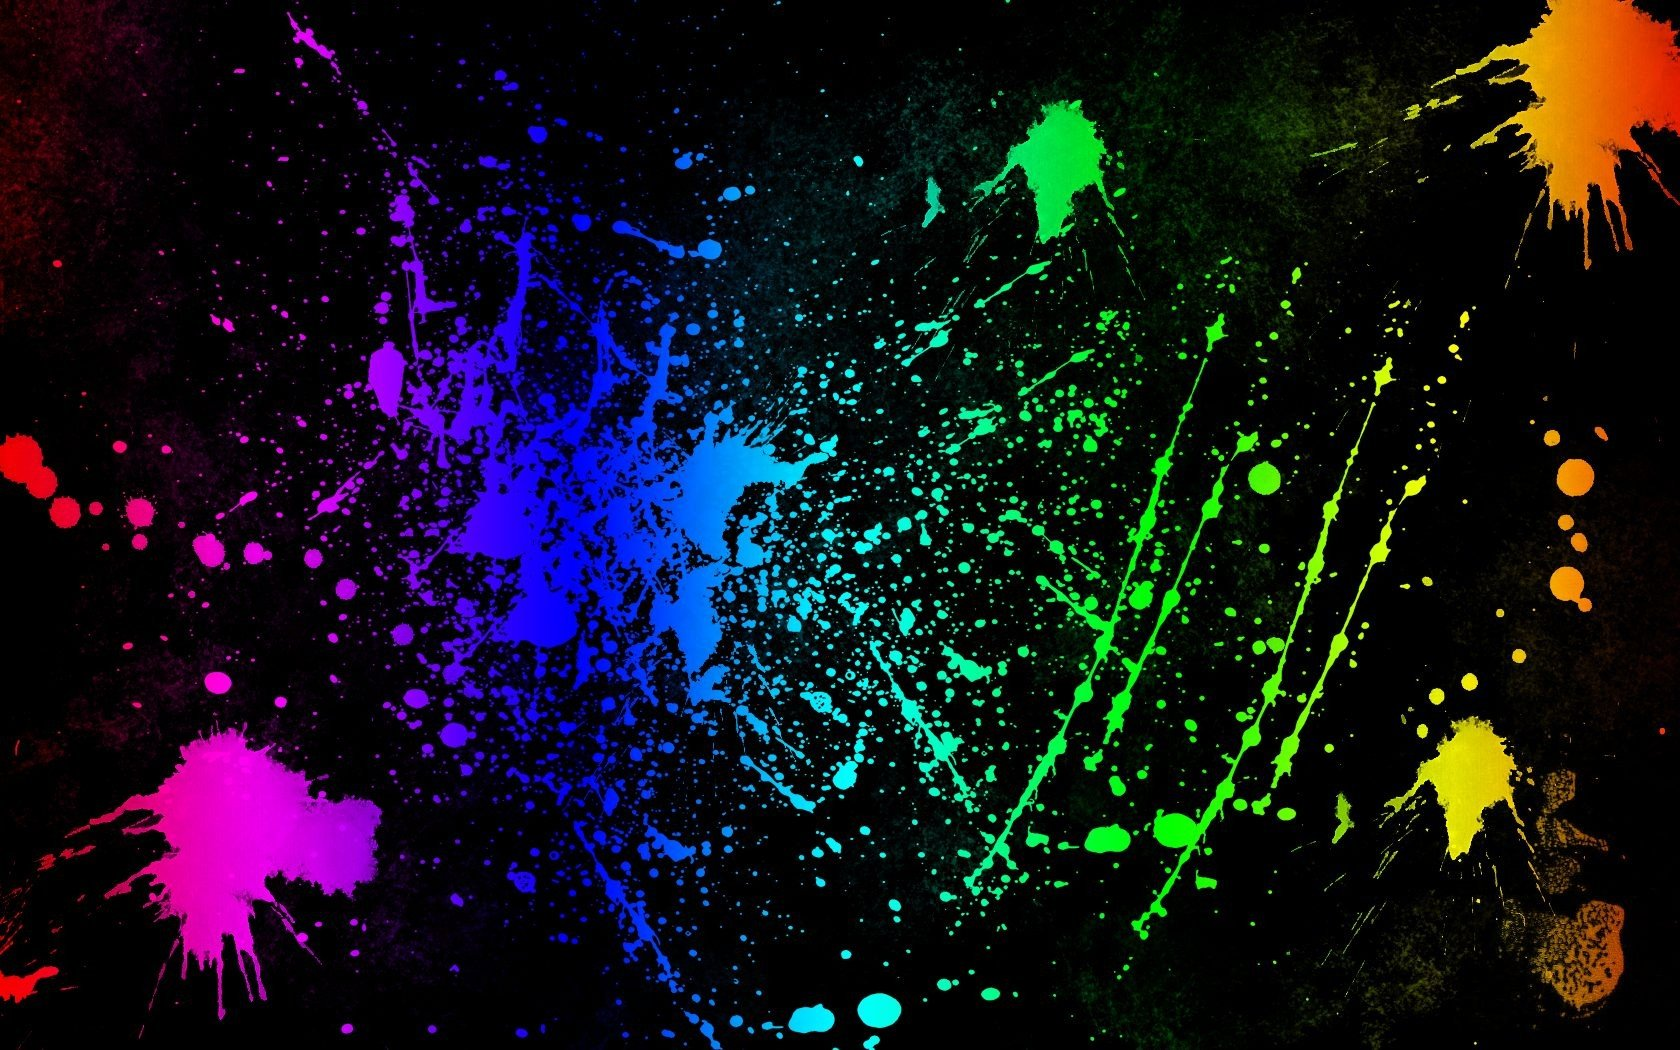 Colorful paint splatter hd wallpapers desktop and - Best laptop wallpapers 2017 ...